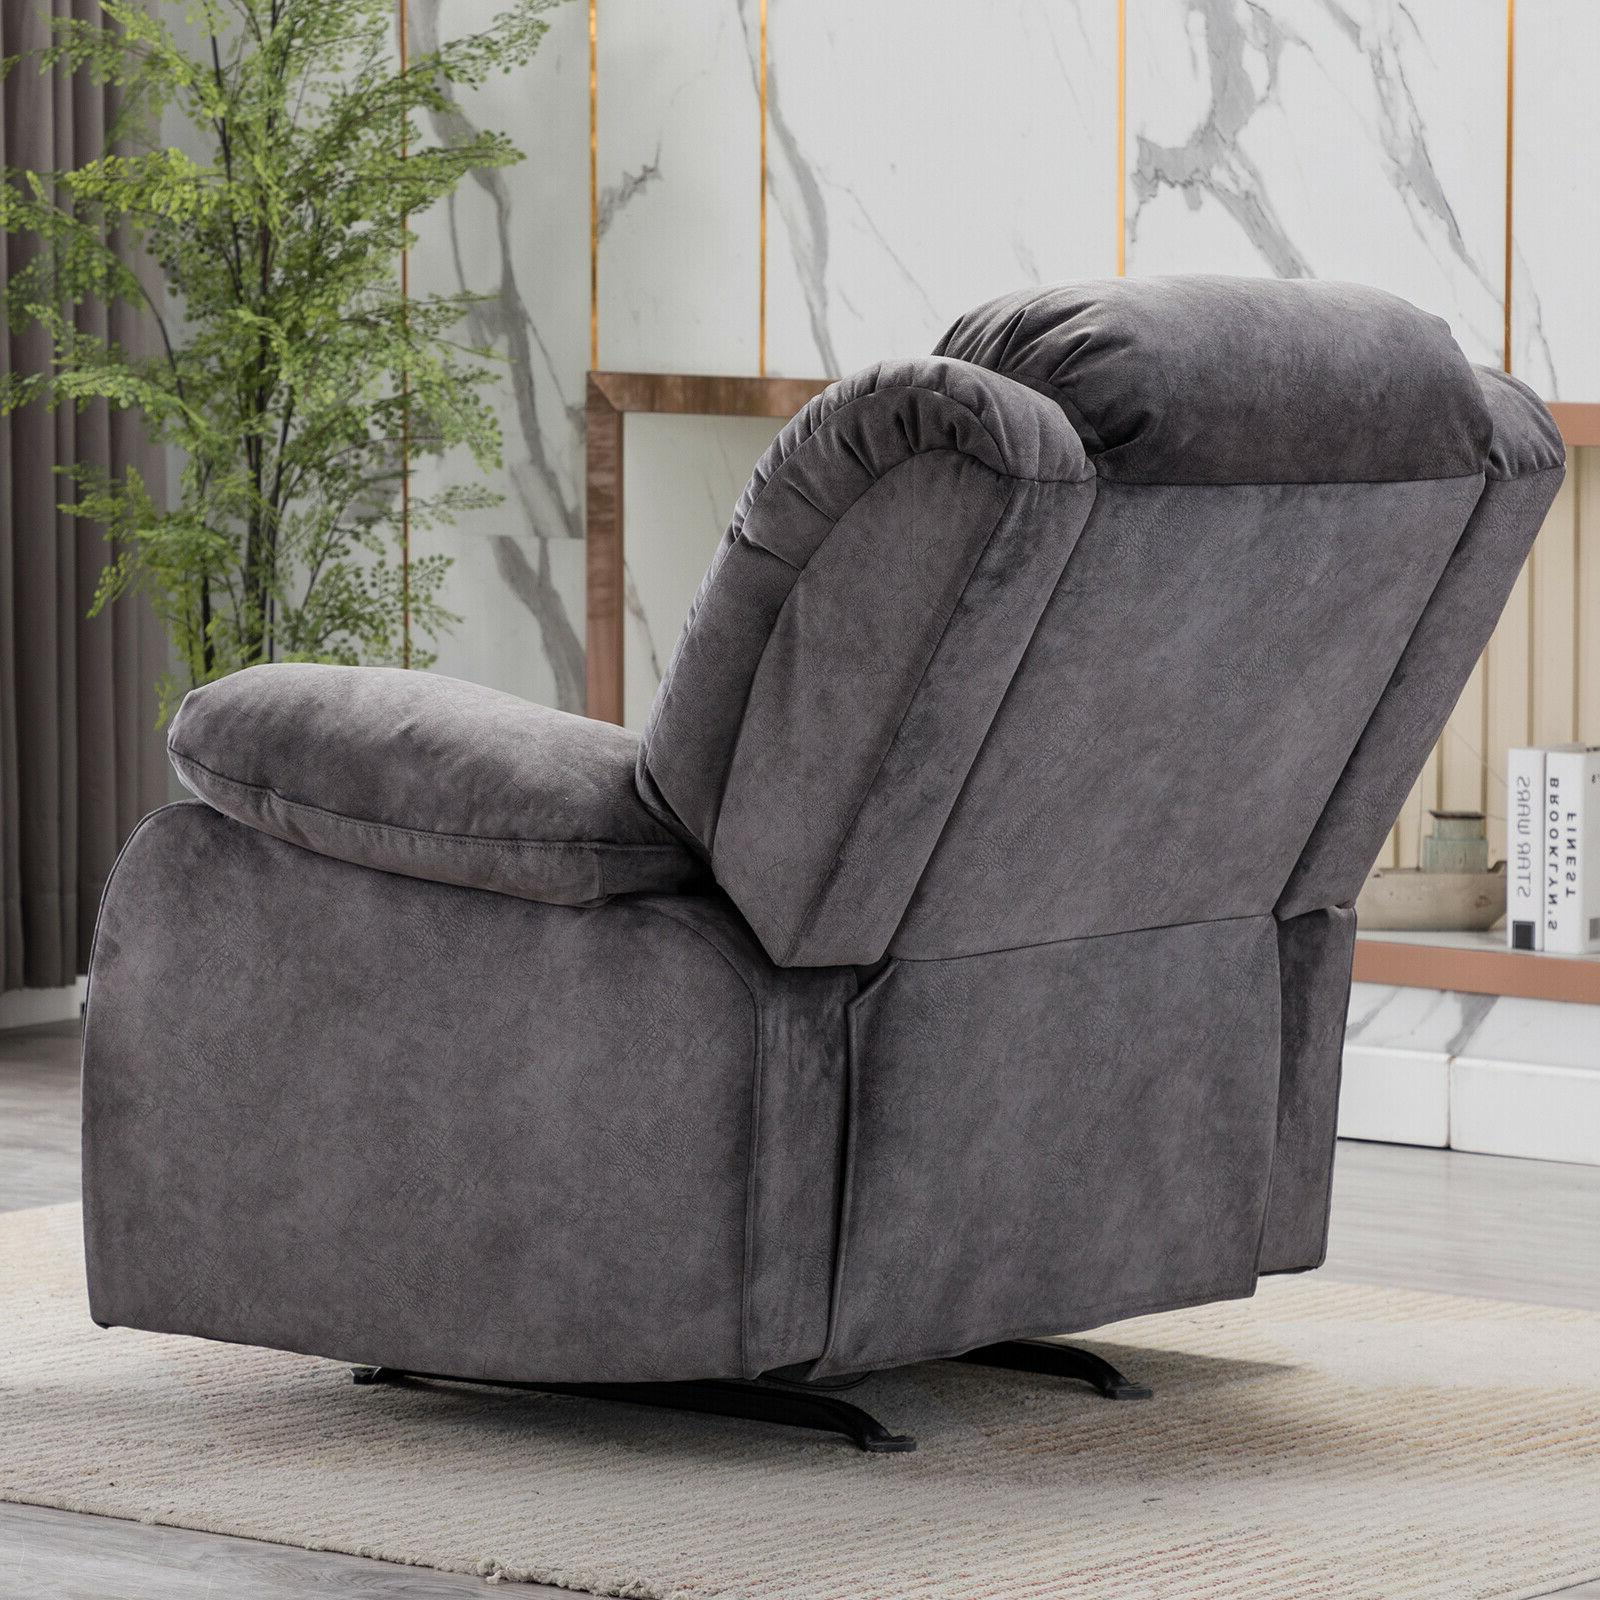 Overstuffed Recliner Chair Bayby Glider Thick Armrest Lounge Sofa